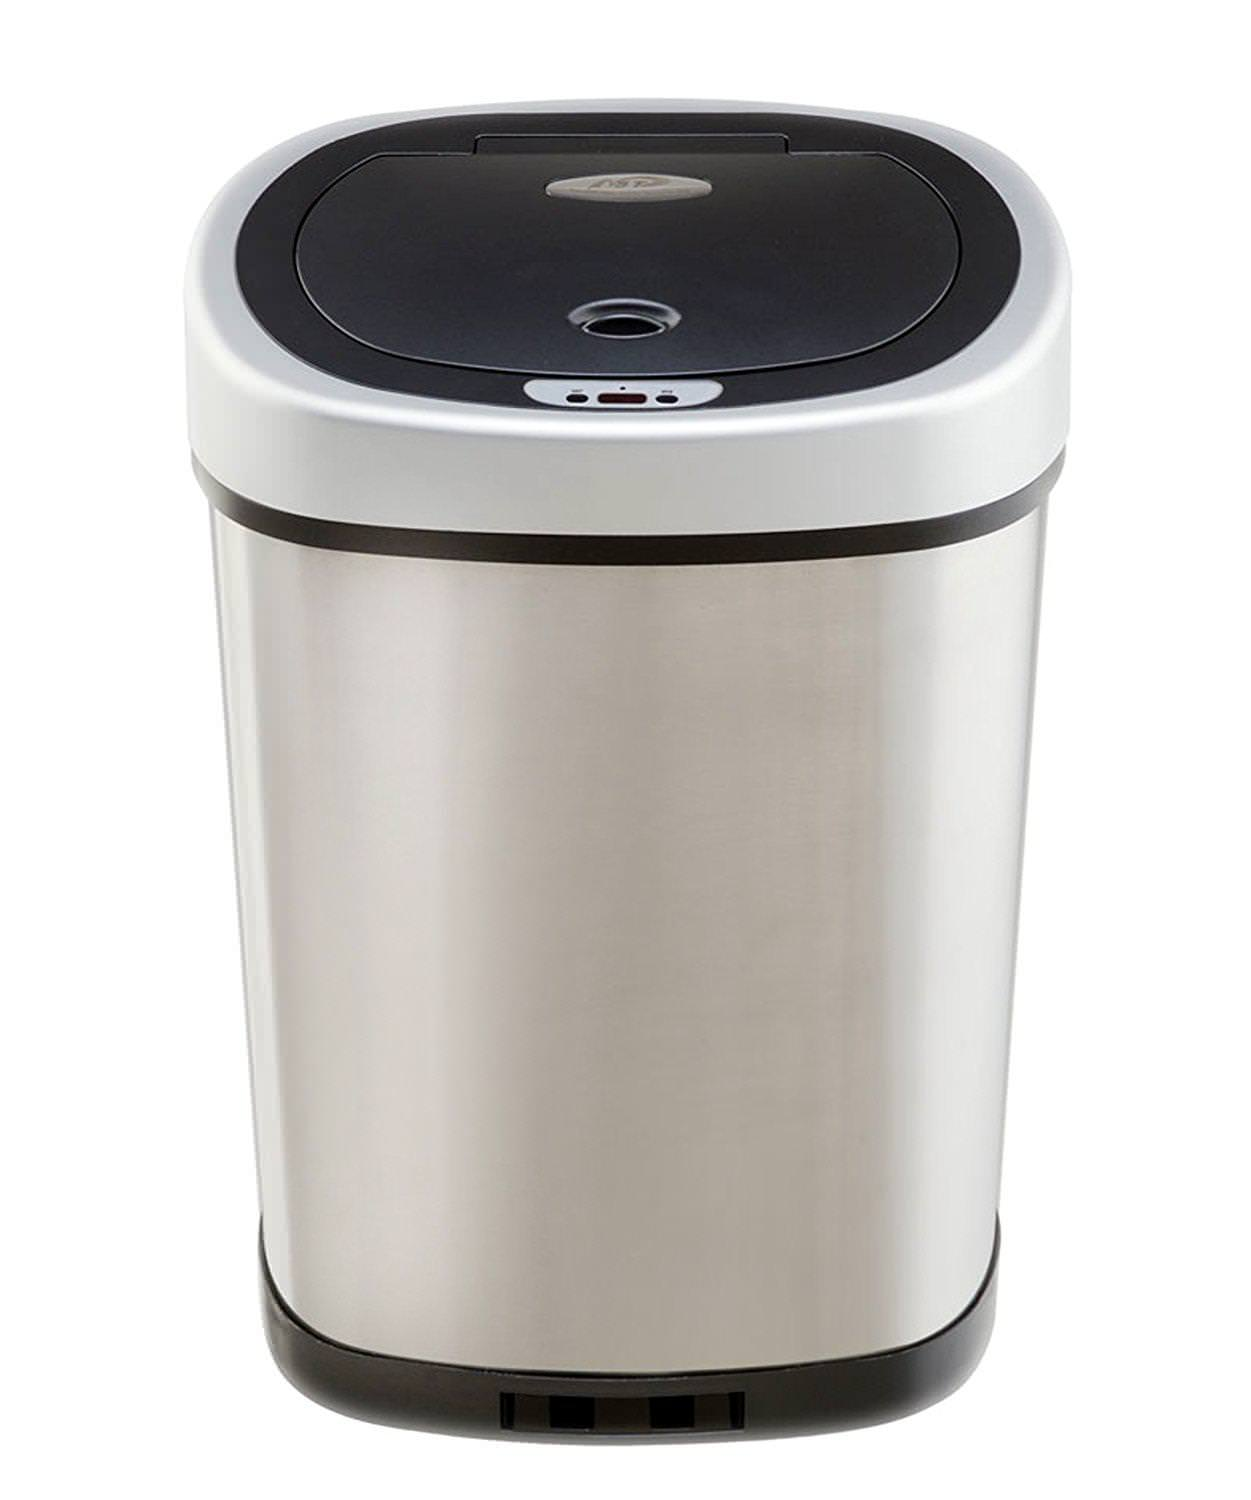 Image of: kitchen garbage cans on sale